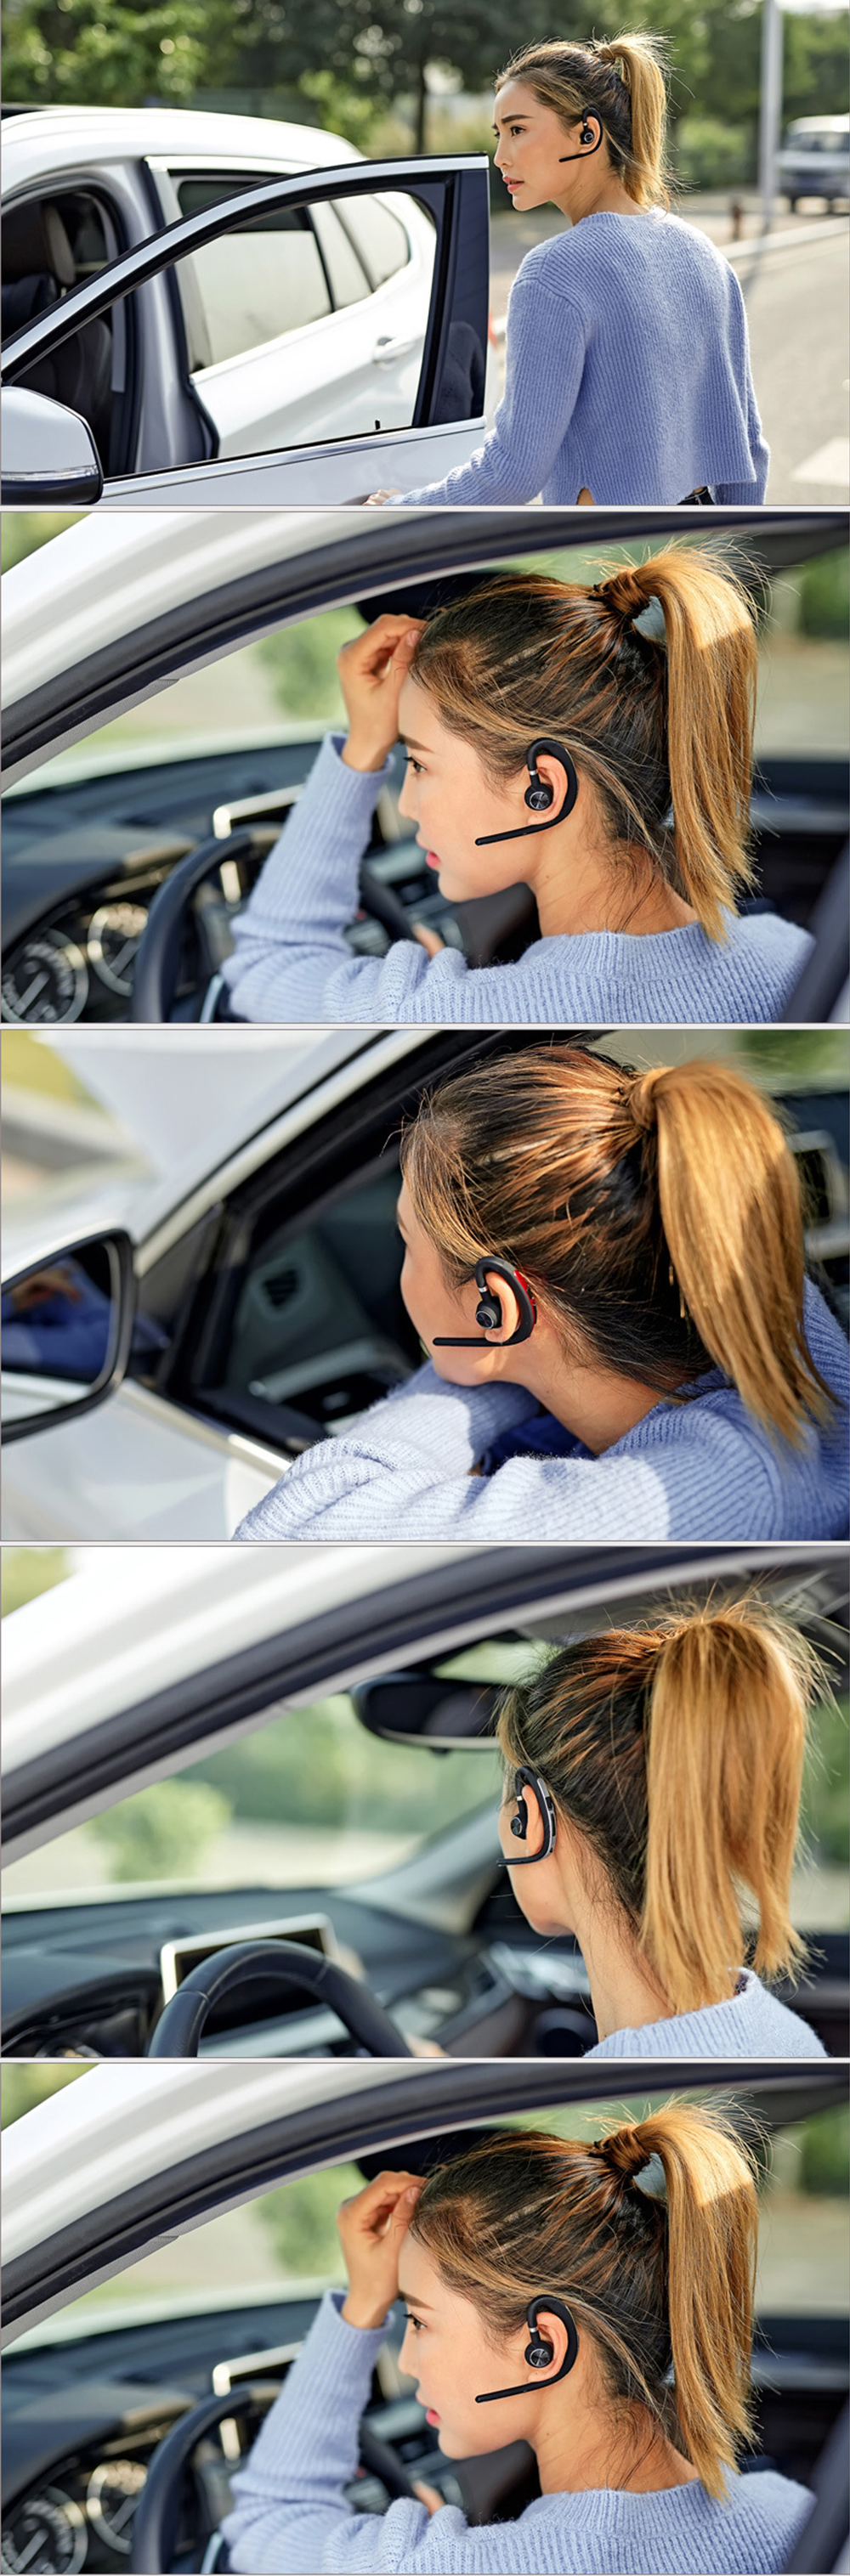 Lymoc Upgrade Y3+ Bluetooth Earphone Handsfree Ear Hook Wireless Headsets V4.1 Noise Cancelling HD Mic Music For iPhone Huawei 14